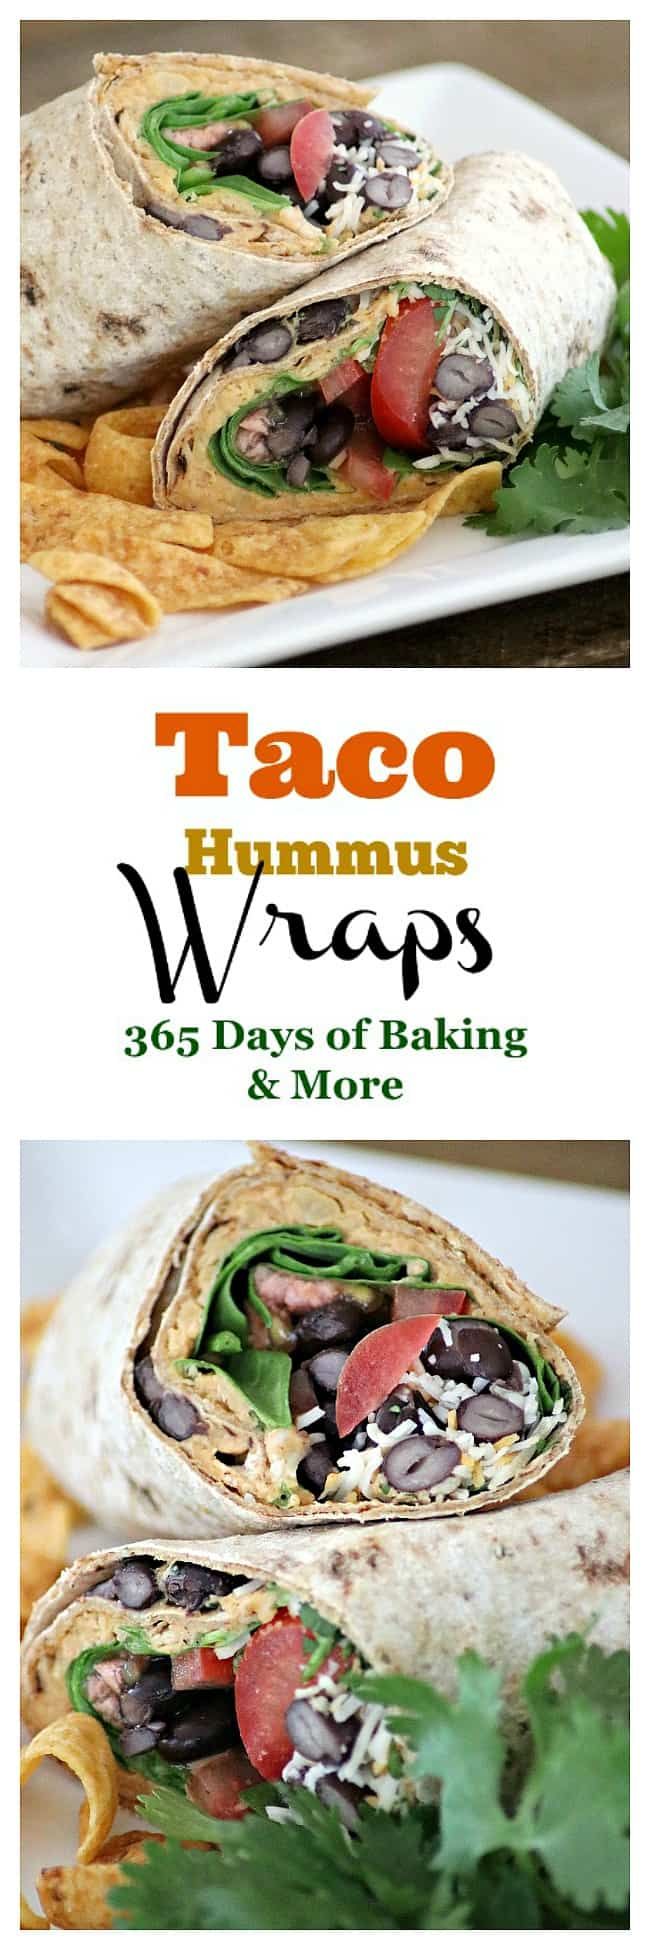 These Taco Hummus Wraps are a tasty way to change things up for Taco Tuesday and the homemade hummus is a great base for your favorite fixin's.